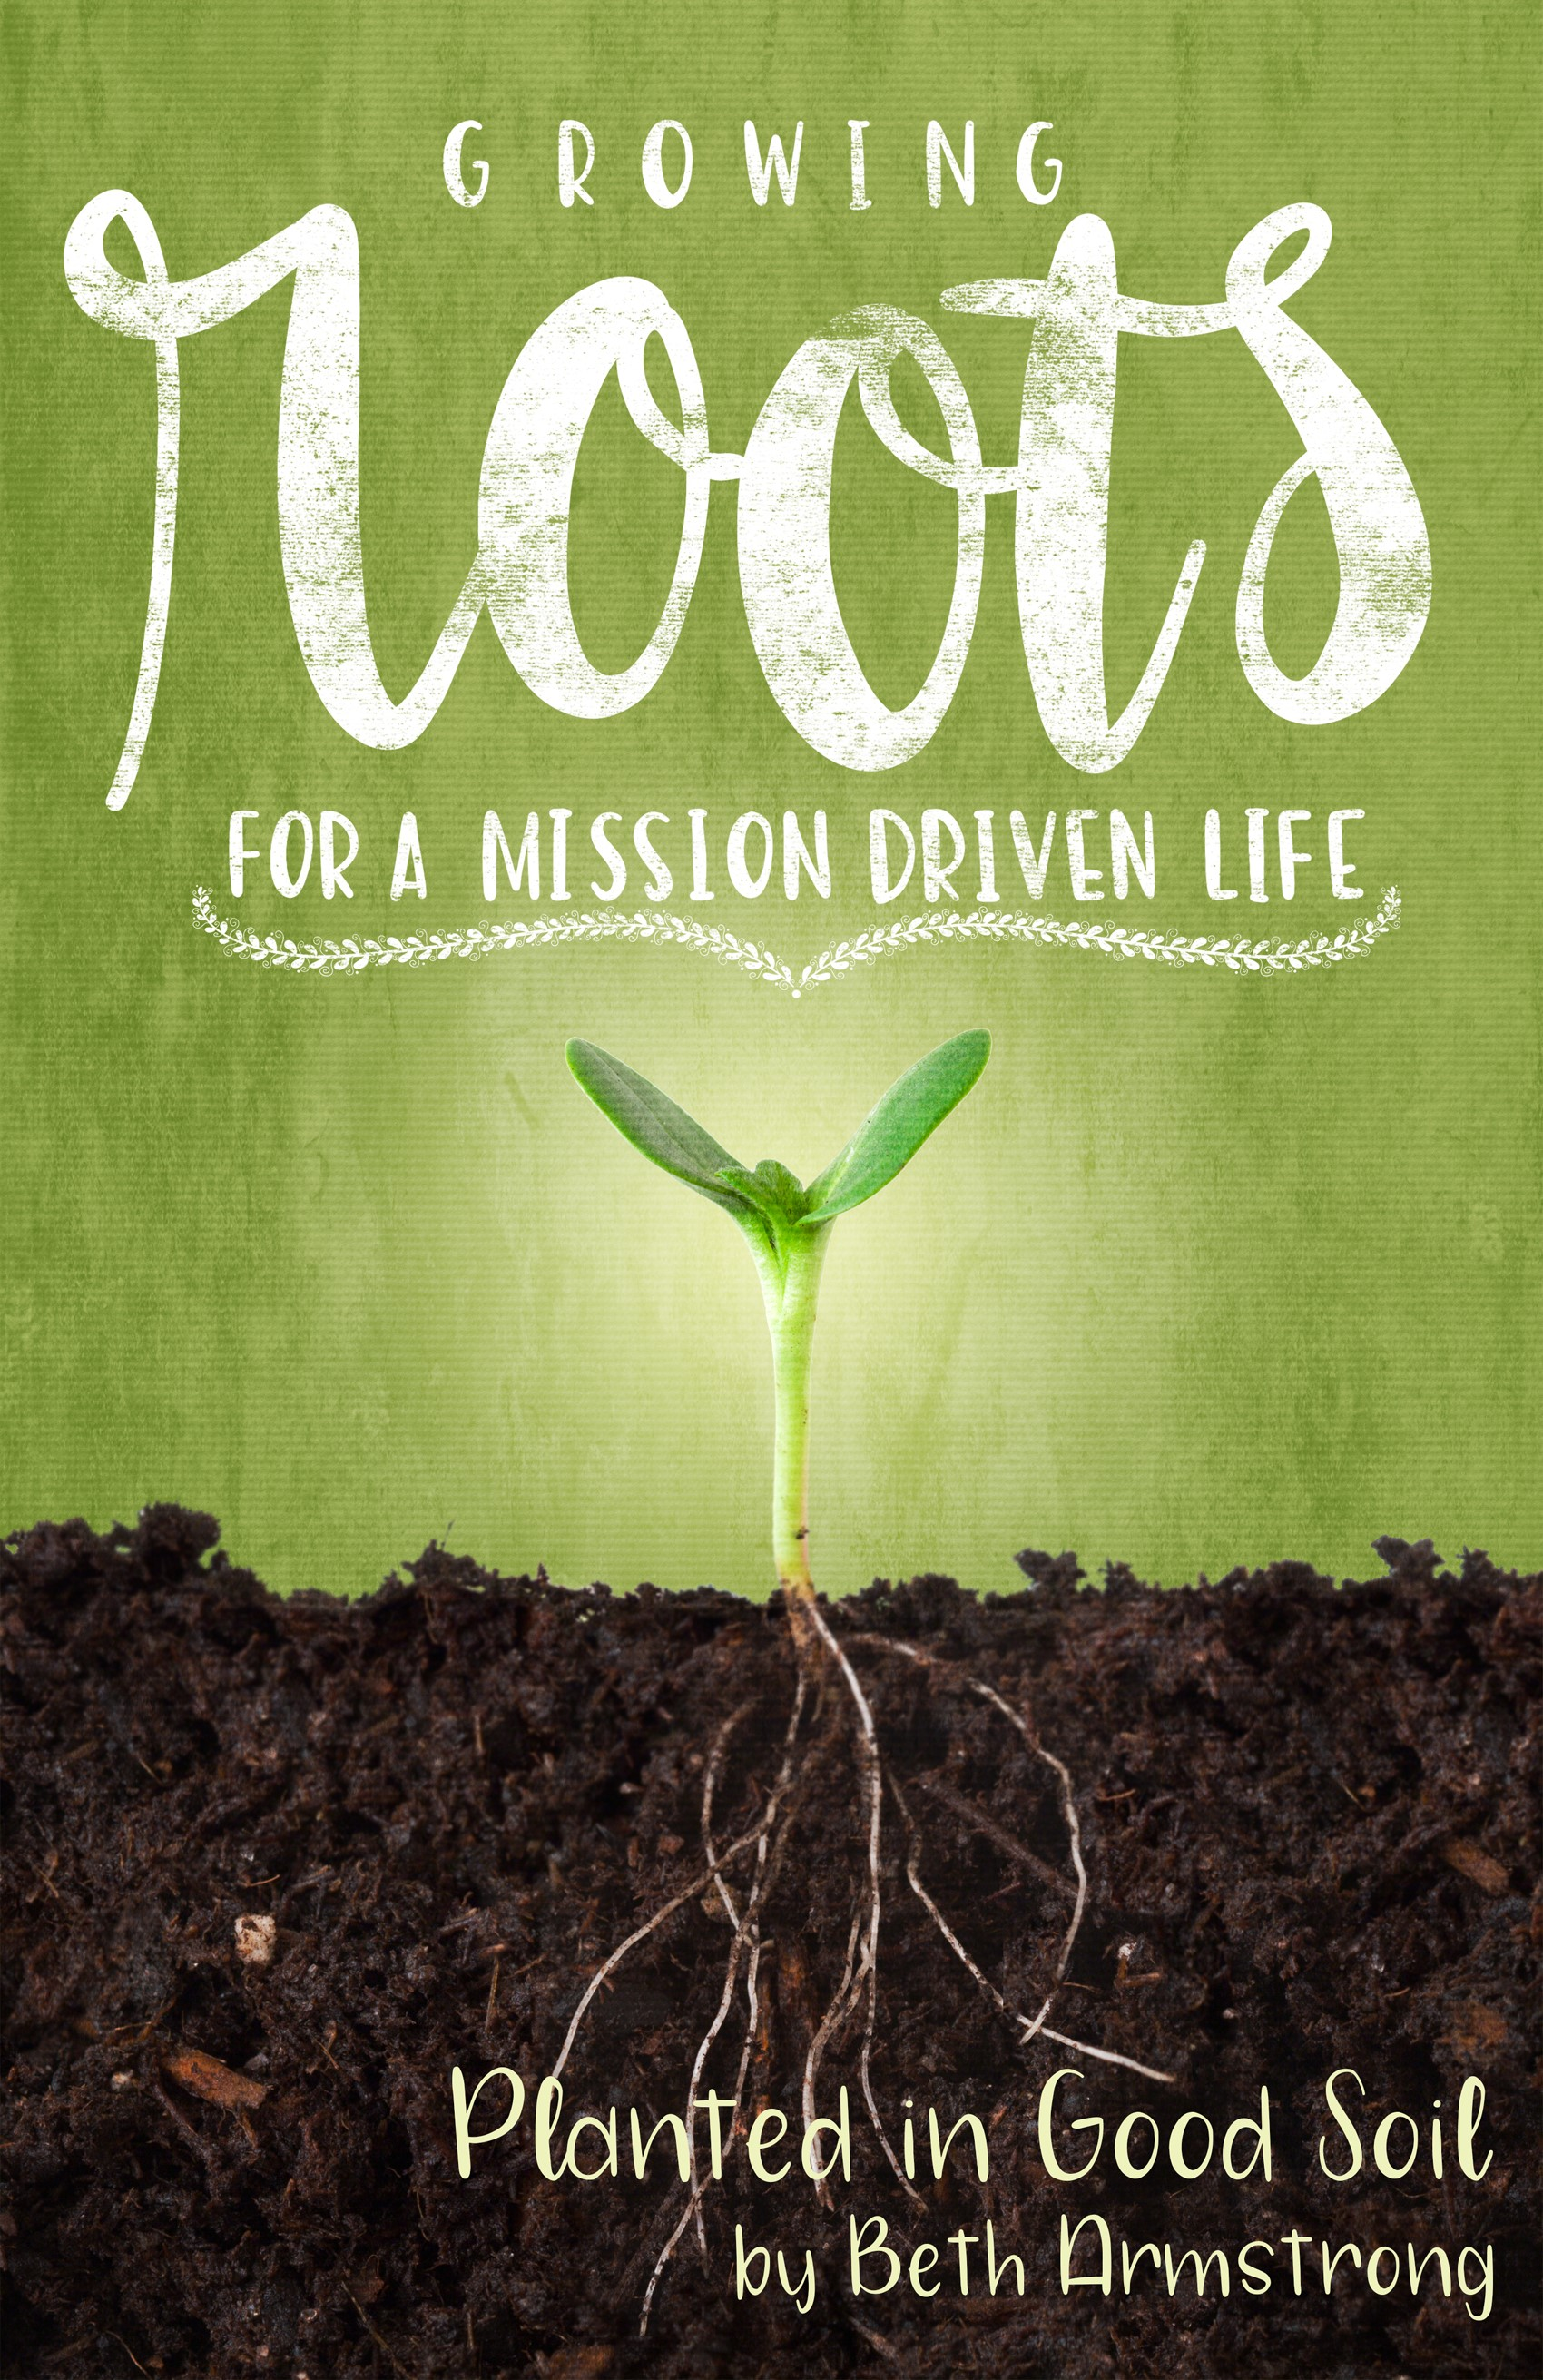 Now Available! - Rooted Leaders is THRILLED to launch our second book in this devotional series to help you grow your roots and identify your calling in Christ! Through this 4-part devotional series, you will identify the steps needed to uncover your unique 'seed' or calling from Christ; learn the importance of planting yourself in the church to your calling; craft a personalized vision for your life; understand WHY you need to make room in your life to develop your calling and be given practical steps how to cull out 'good' things in your life so that you have the room needed for God's GREAT things; produce actionable steps to nourish your seed for future growth, and more.